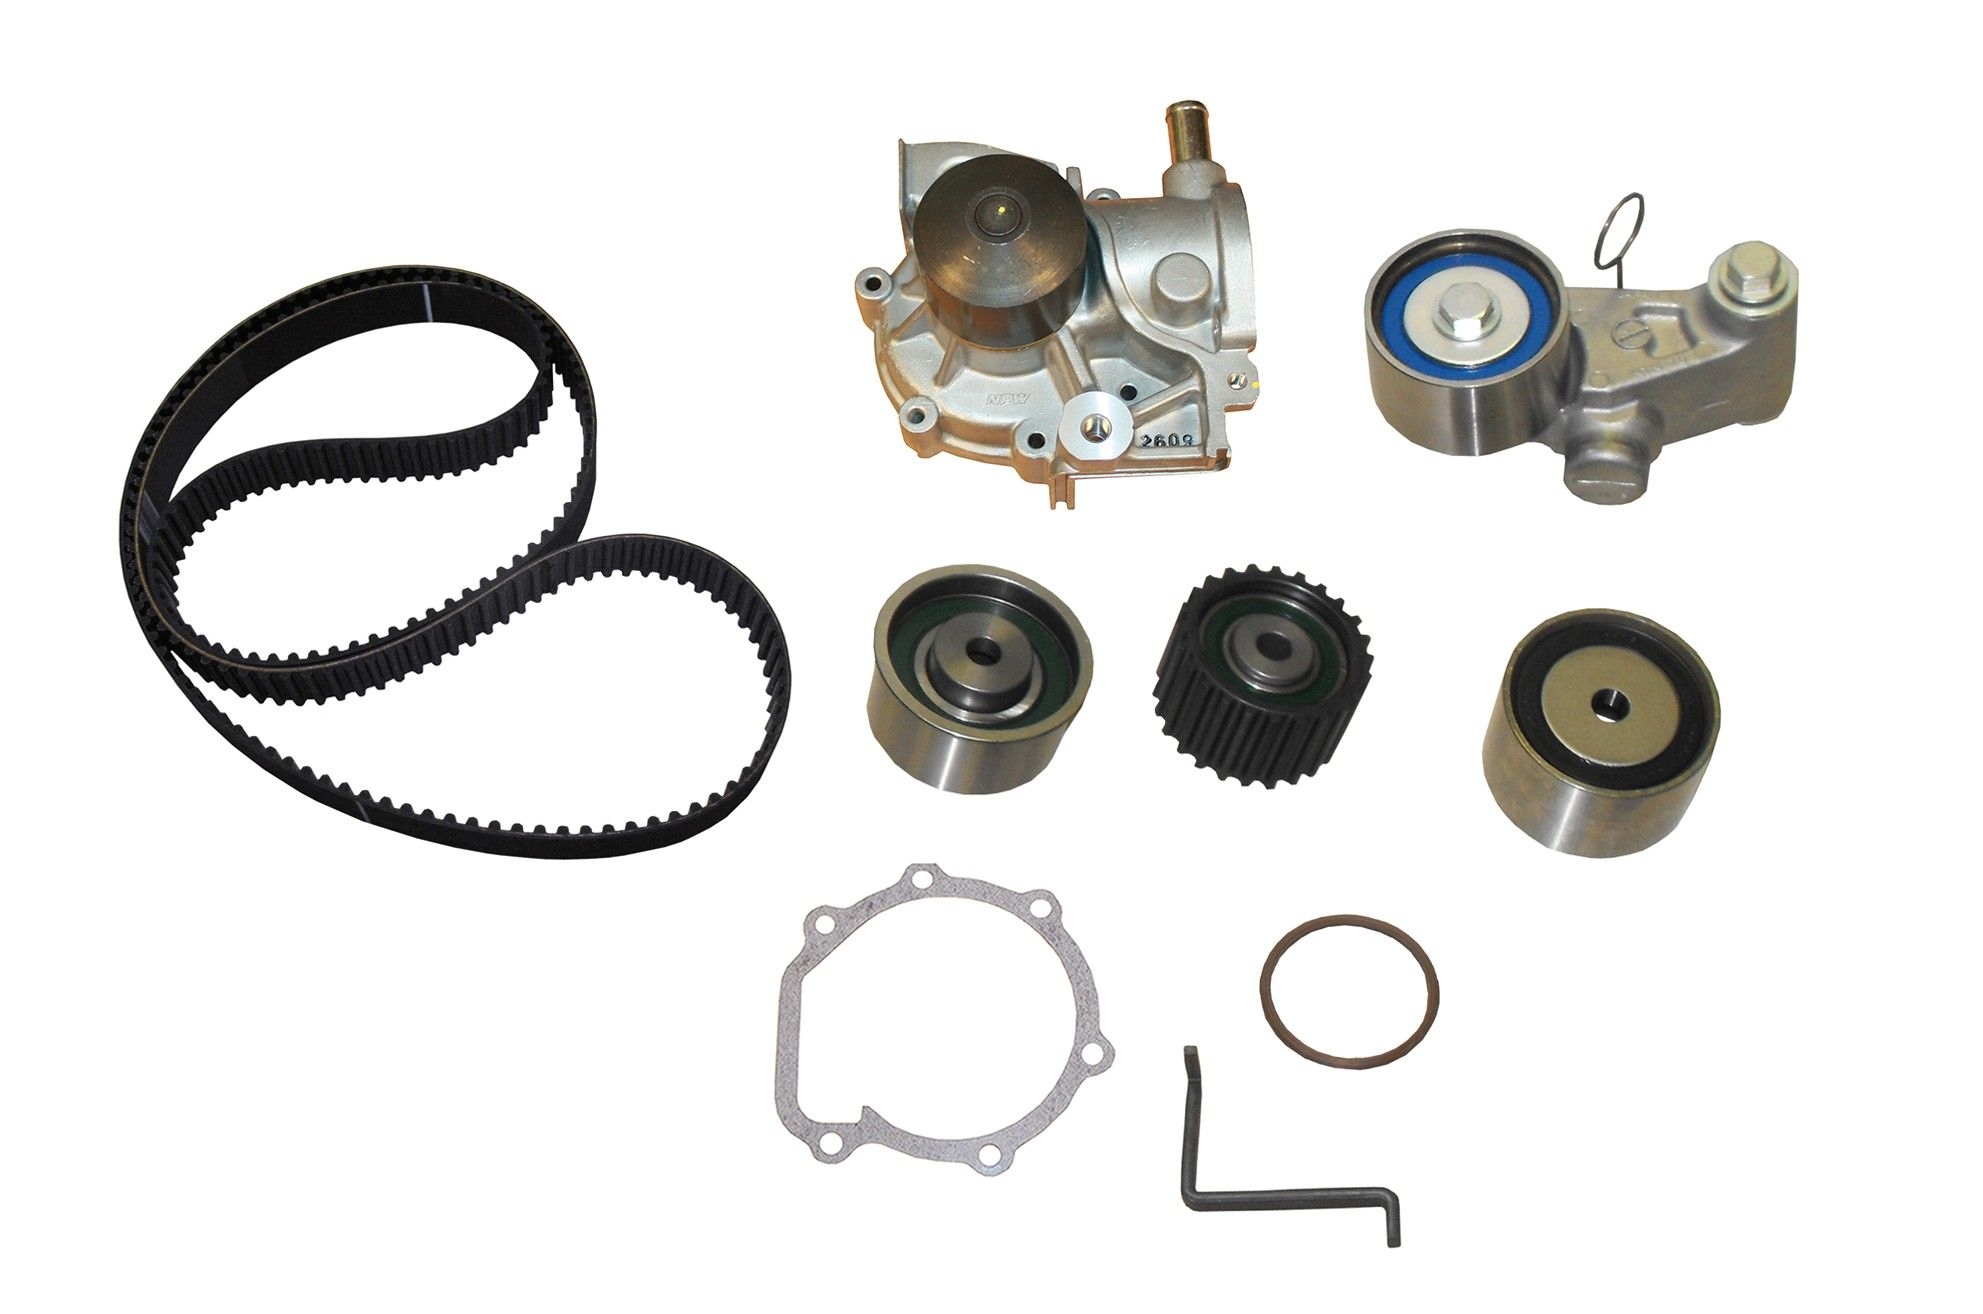 Subaru Outback Engine Timing Belt Kit With Water Pump Replacement 2000 Marks 2005 4 Cyl 25l Crp Tb307lk1 Pro Series Contitech Interference Eng Includes Hyd